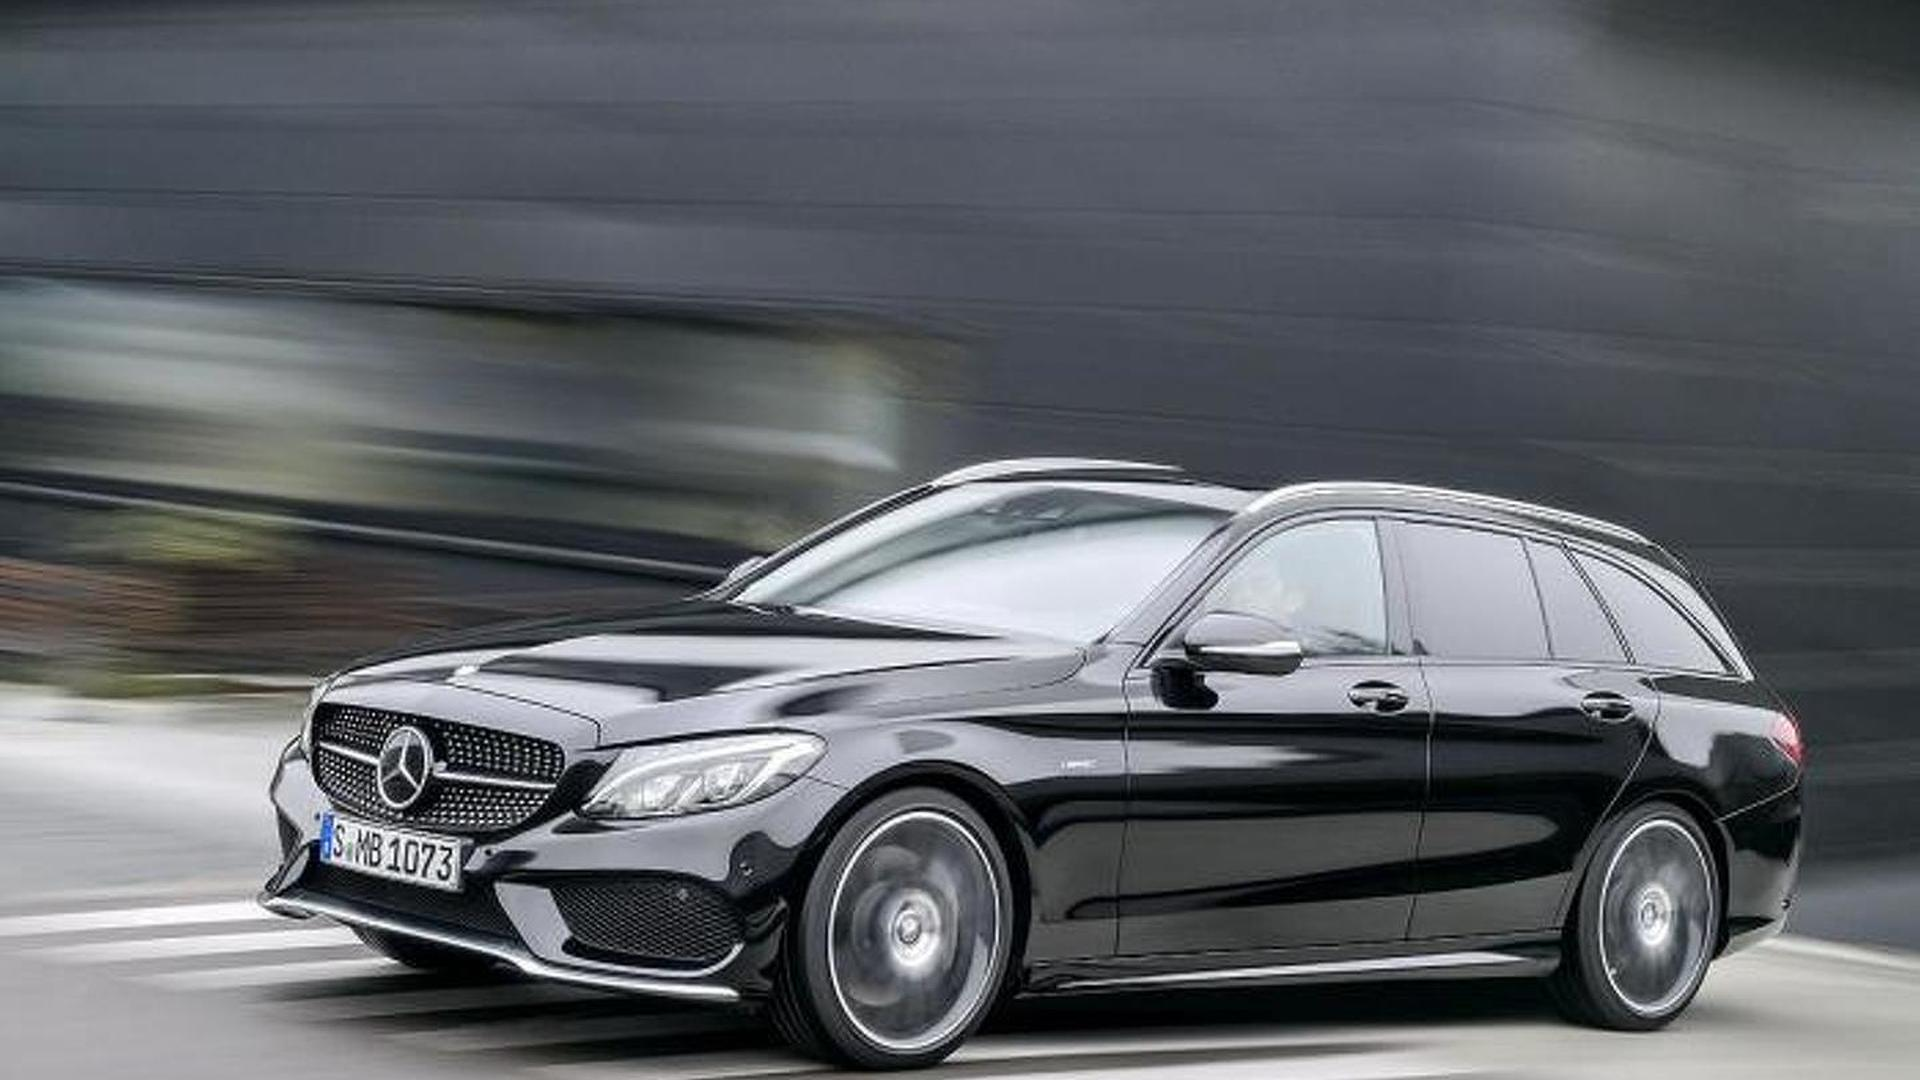 mercedes amg c43 sedan estate pricing announced for uk. Black Bedroom Furniture Sets. Home Design Ideas